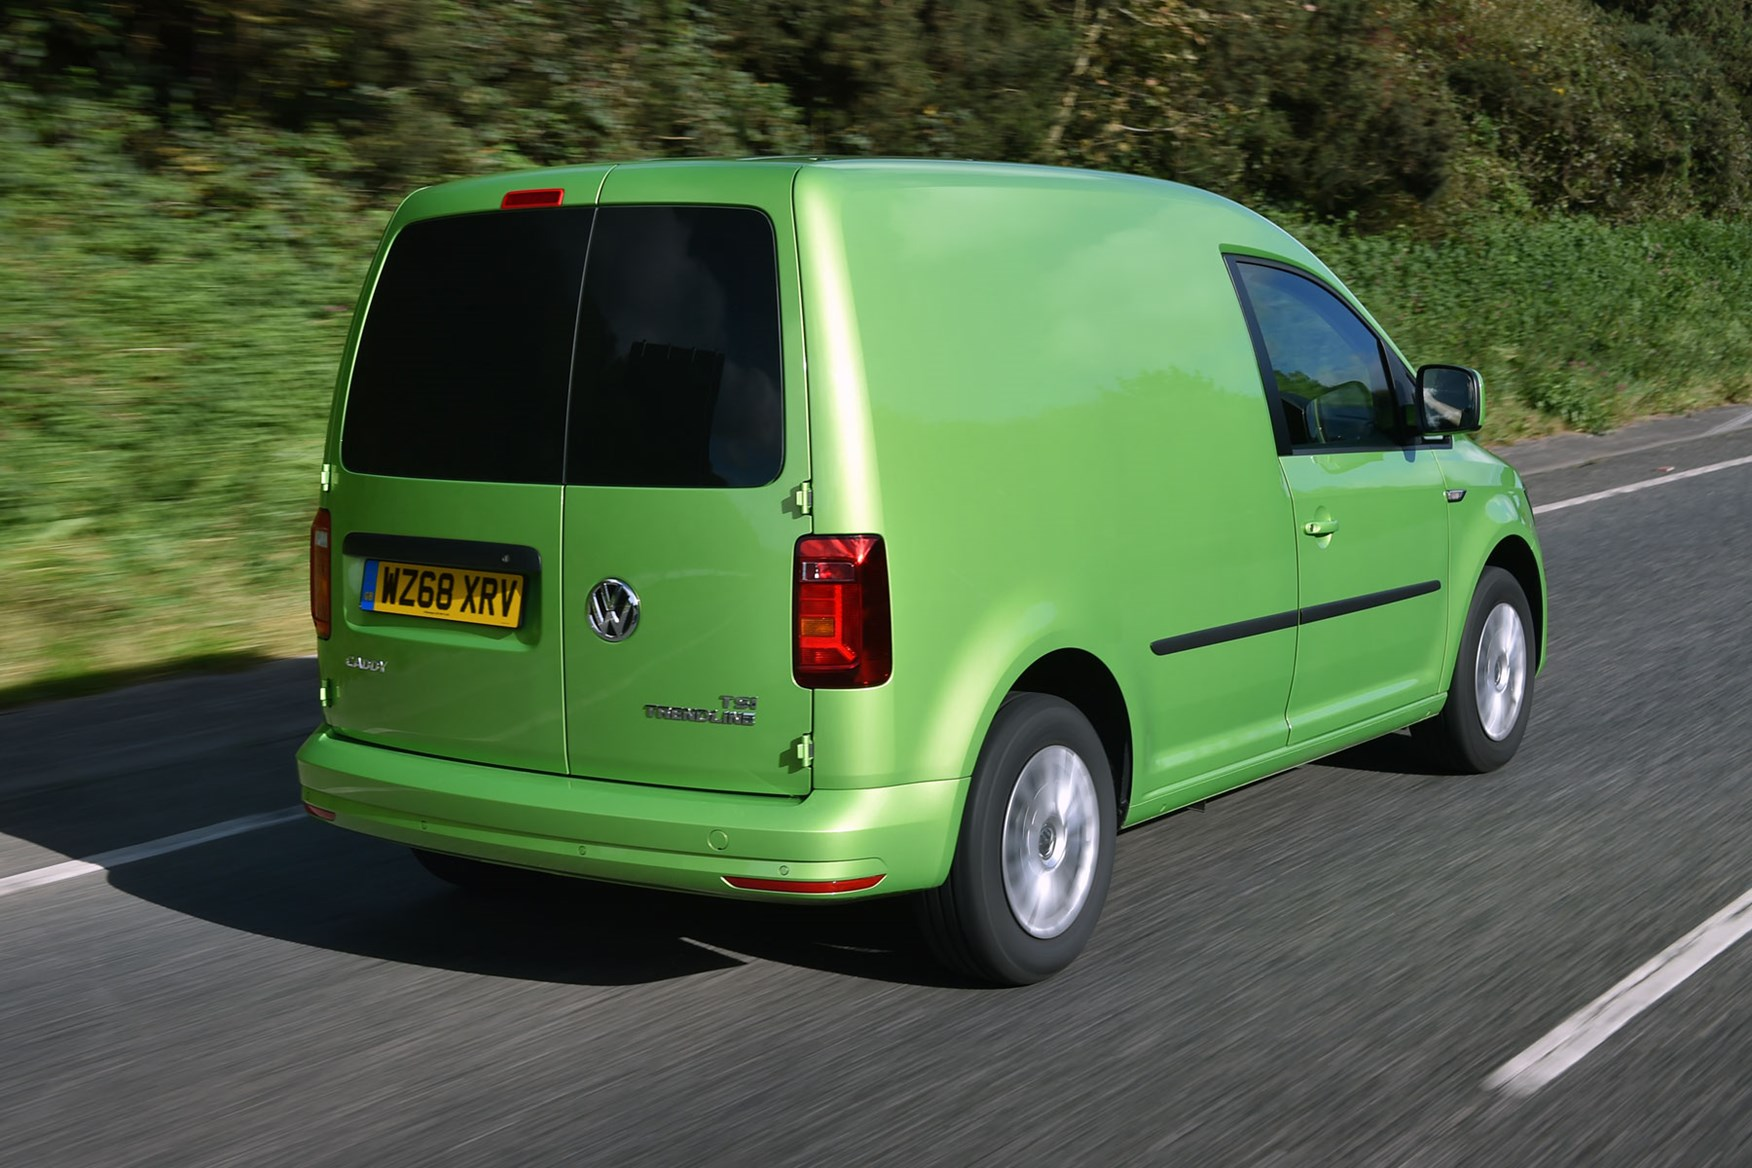 VW Caddy review - 2018 model, rear view, driving, green